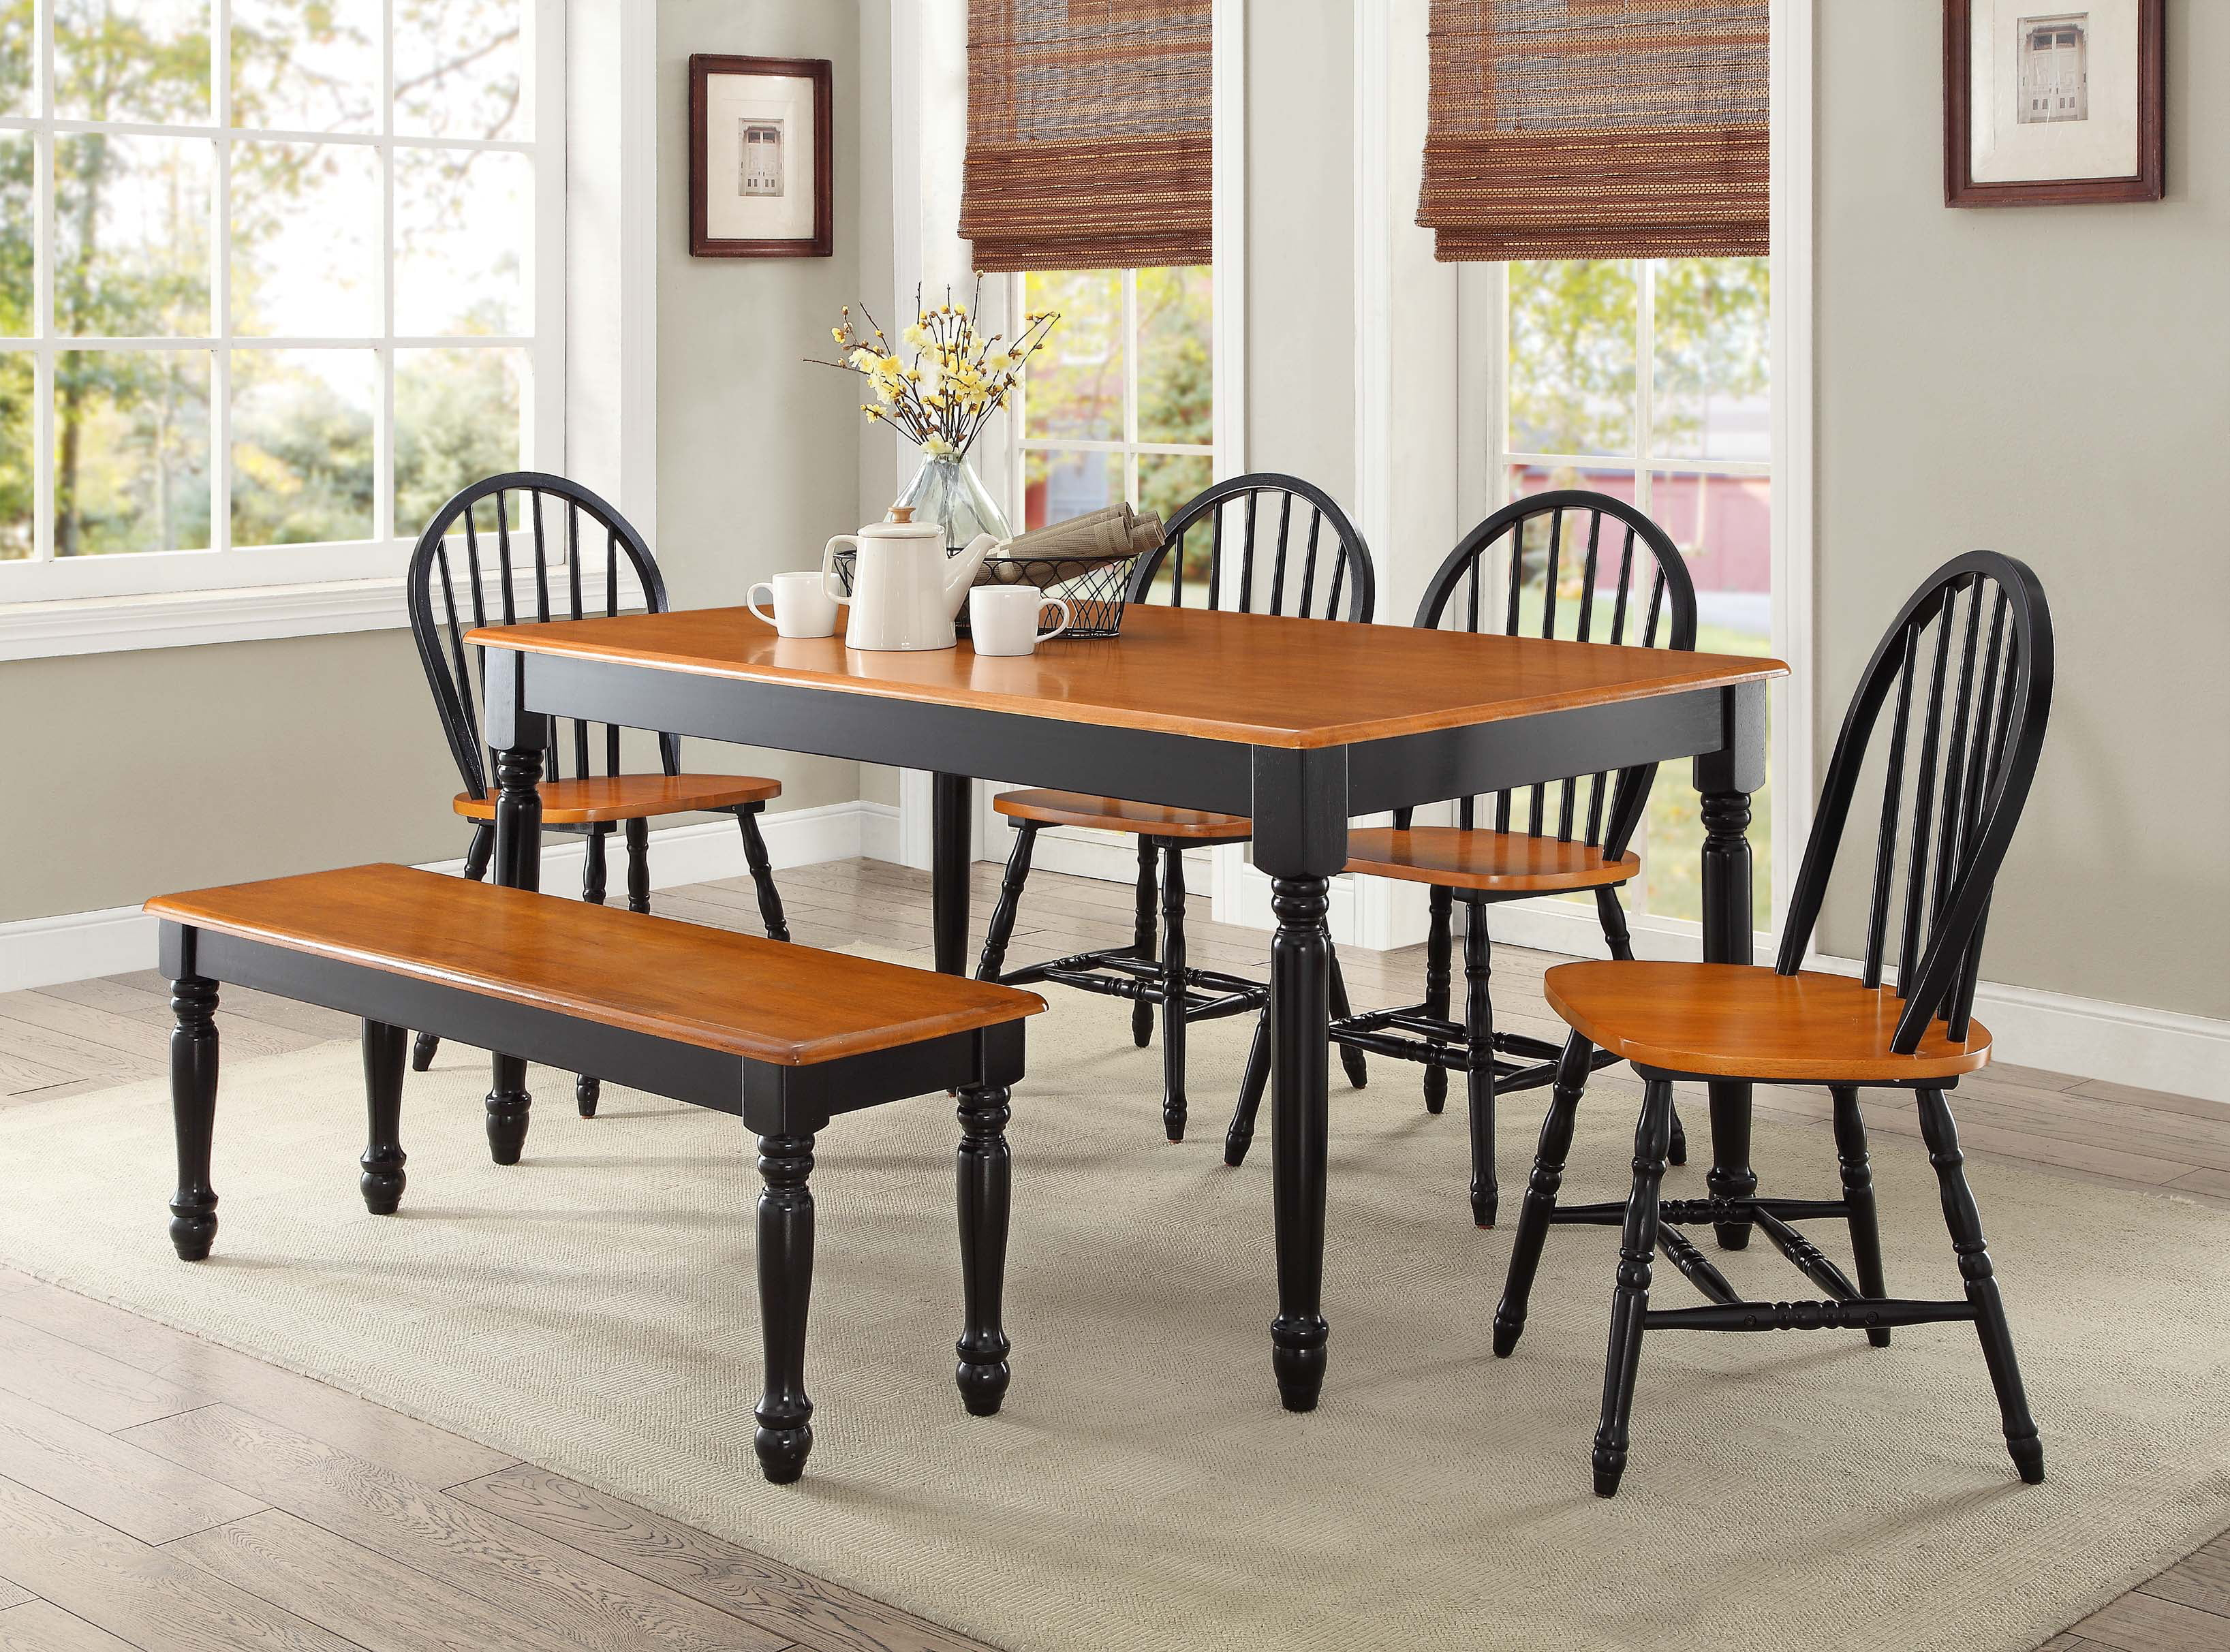 Better Homes And Gardens Autumn Lane 3 Piece Dining Set Black Oak